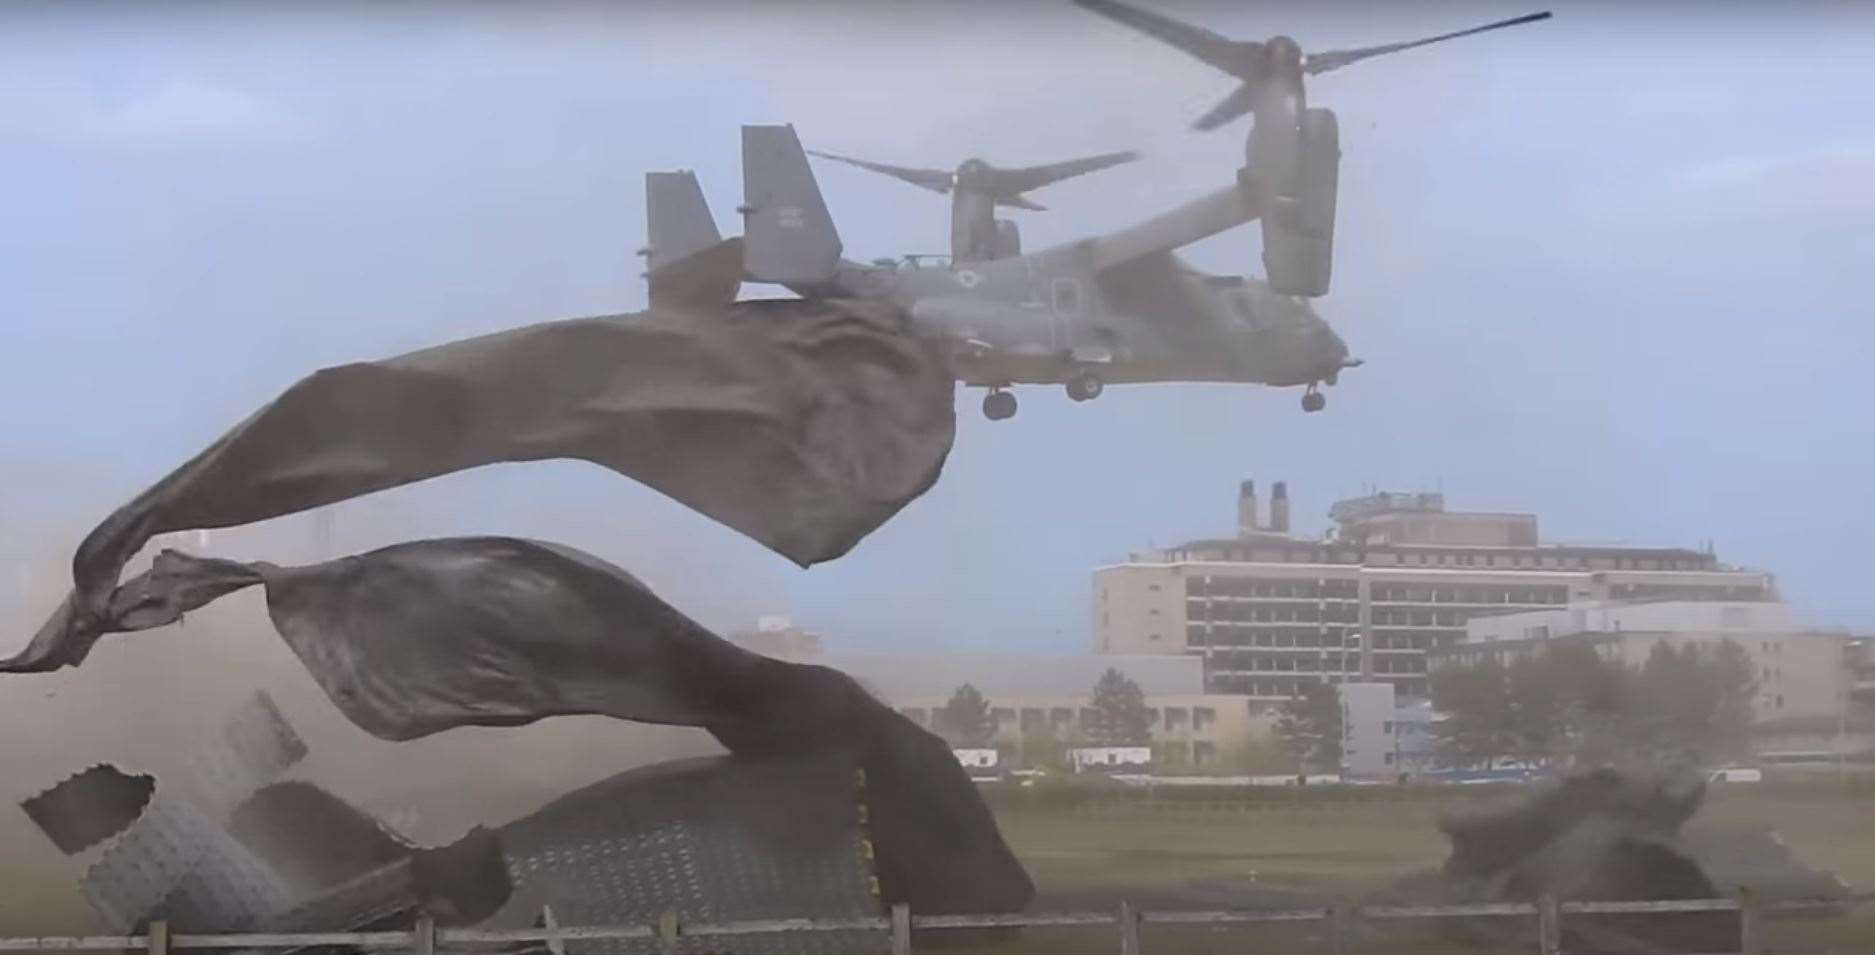 The Cambridge University Hospitals helipad is blown apart by the USAF Boeing/Bell CV-22B Osprey on April 21, 2021. Screen grab from Trailspotter video at https://www.youtube.com/watch?v=ObfdLy-QlsU